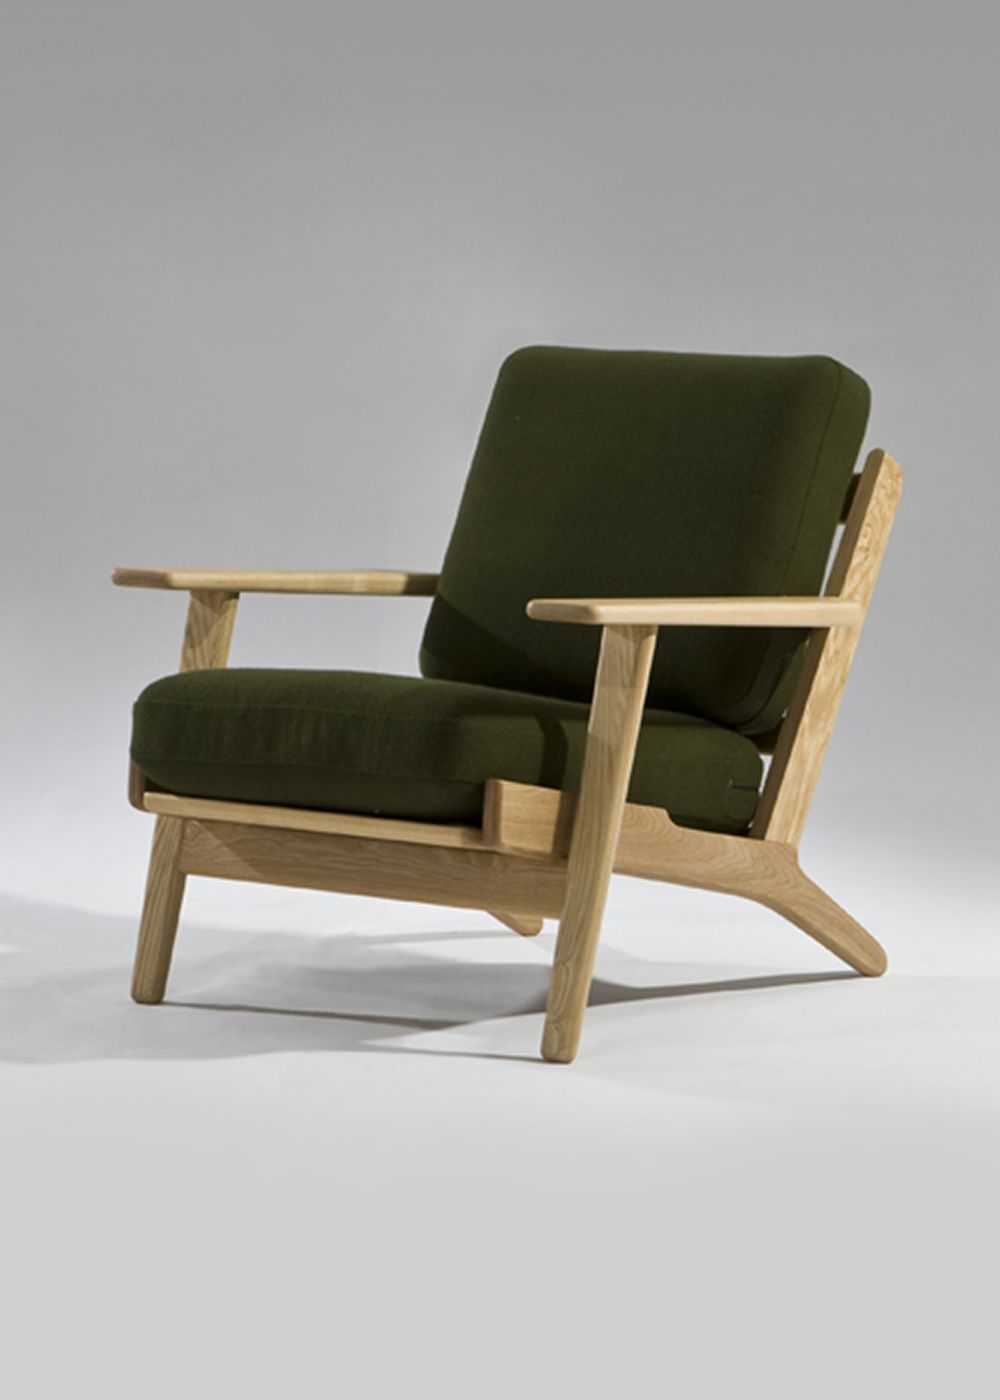 Picture of the Lark Lounge Chair. Furniture design